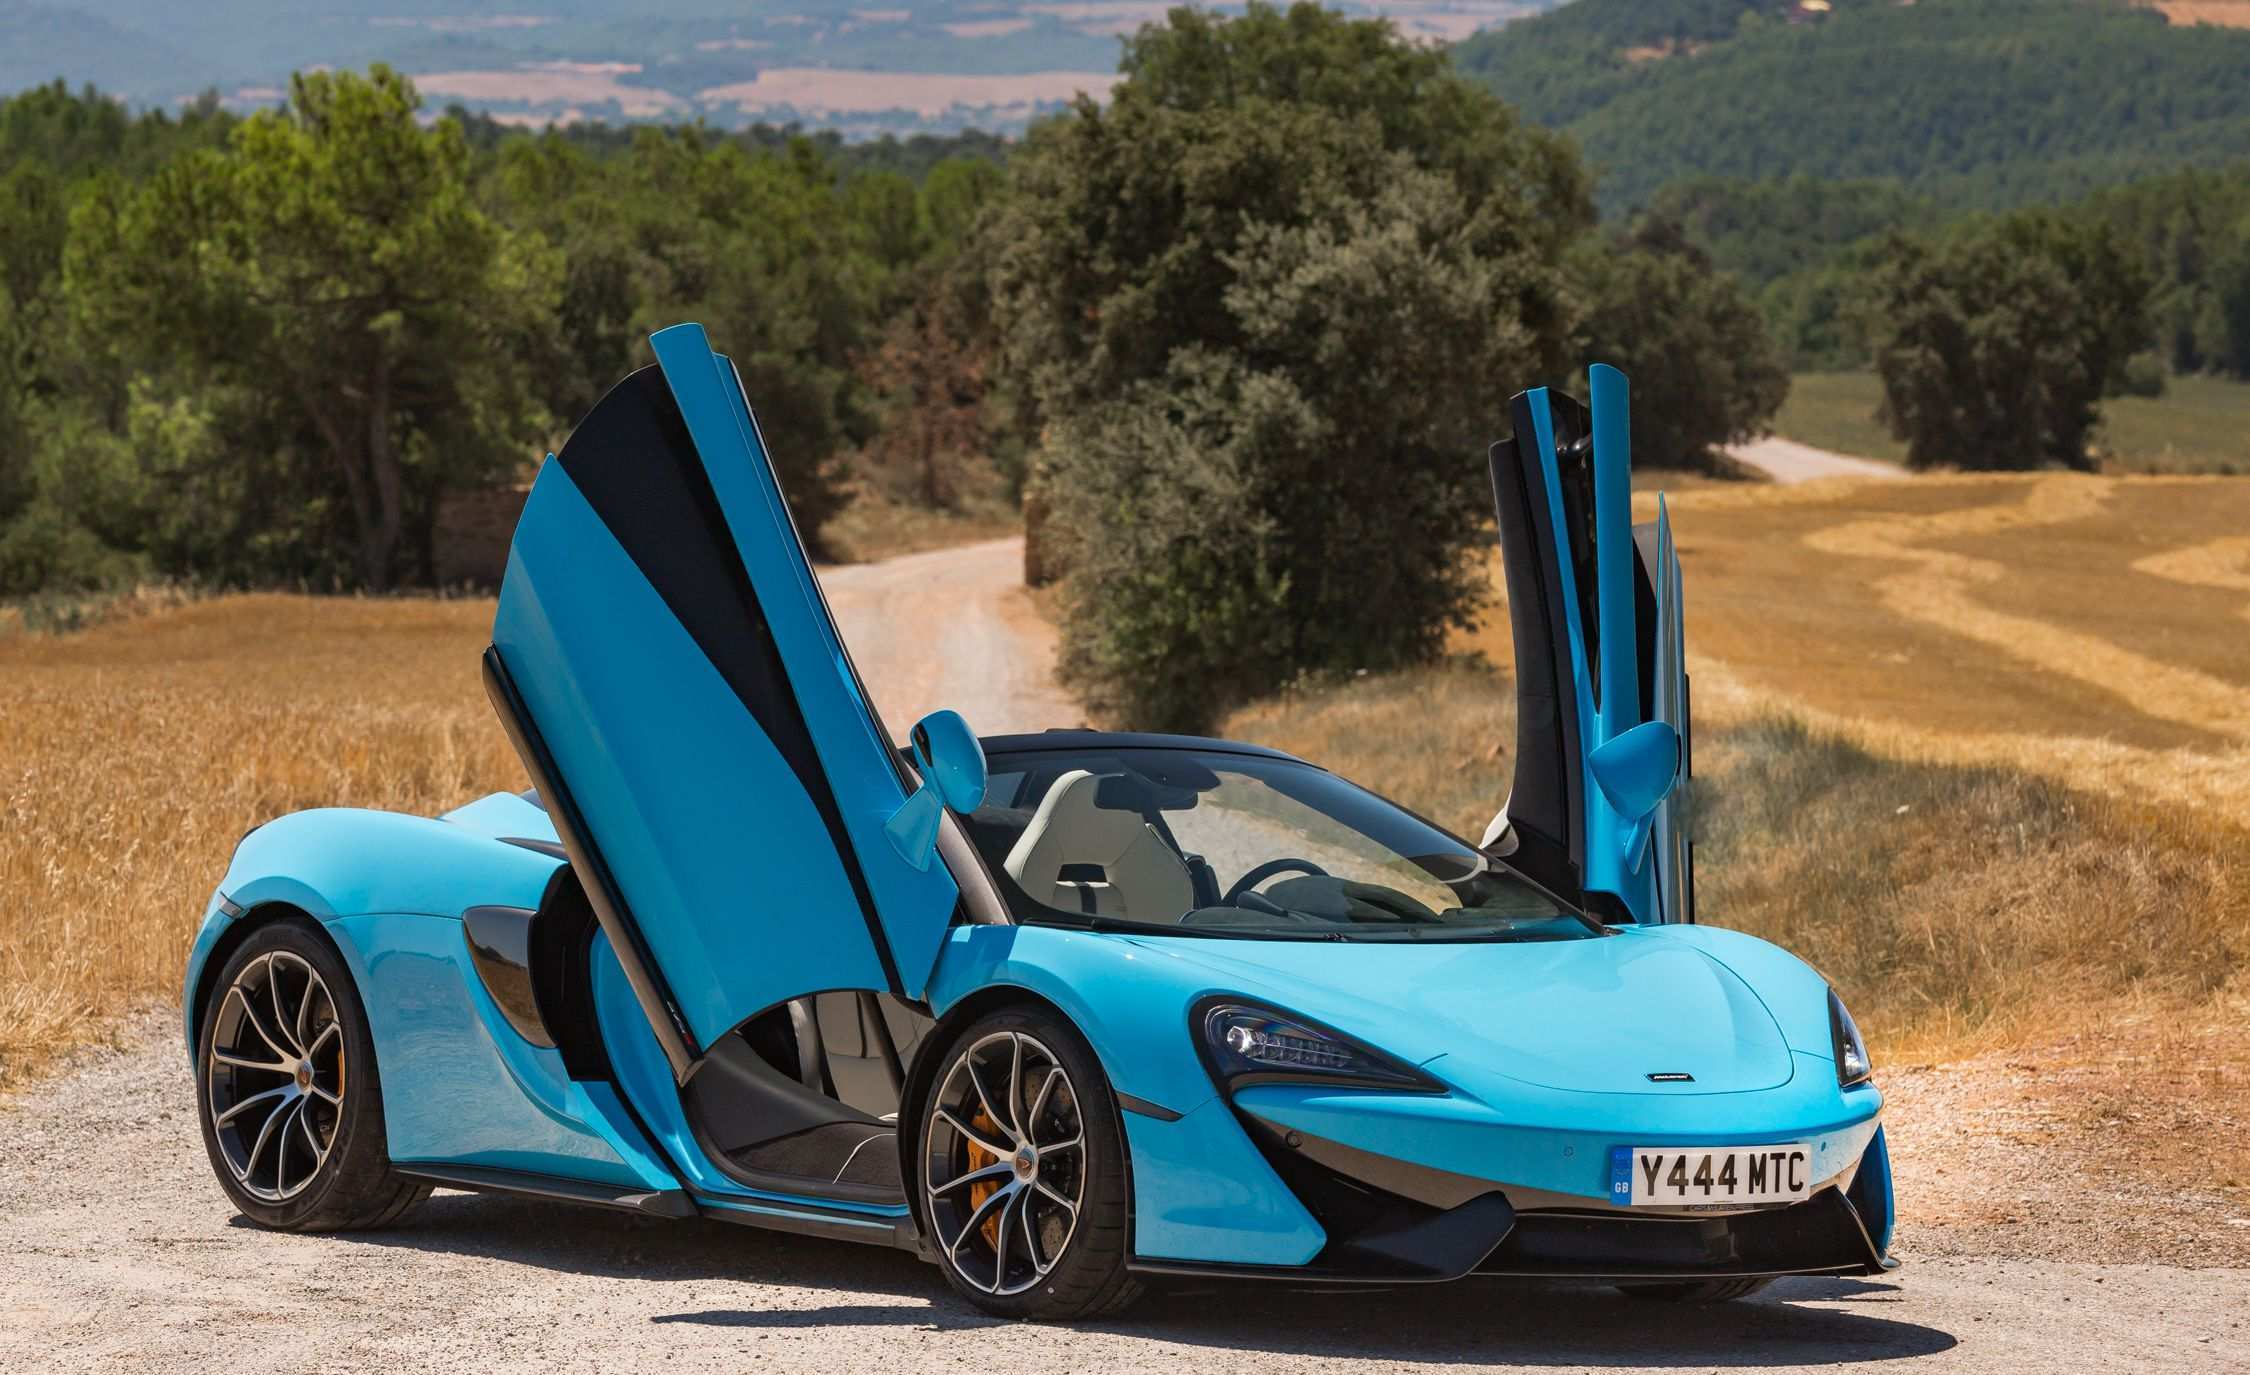 51 New 2020 McLaren 570S Coupe Release Date by 2020 McLaren 570S Coupe